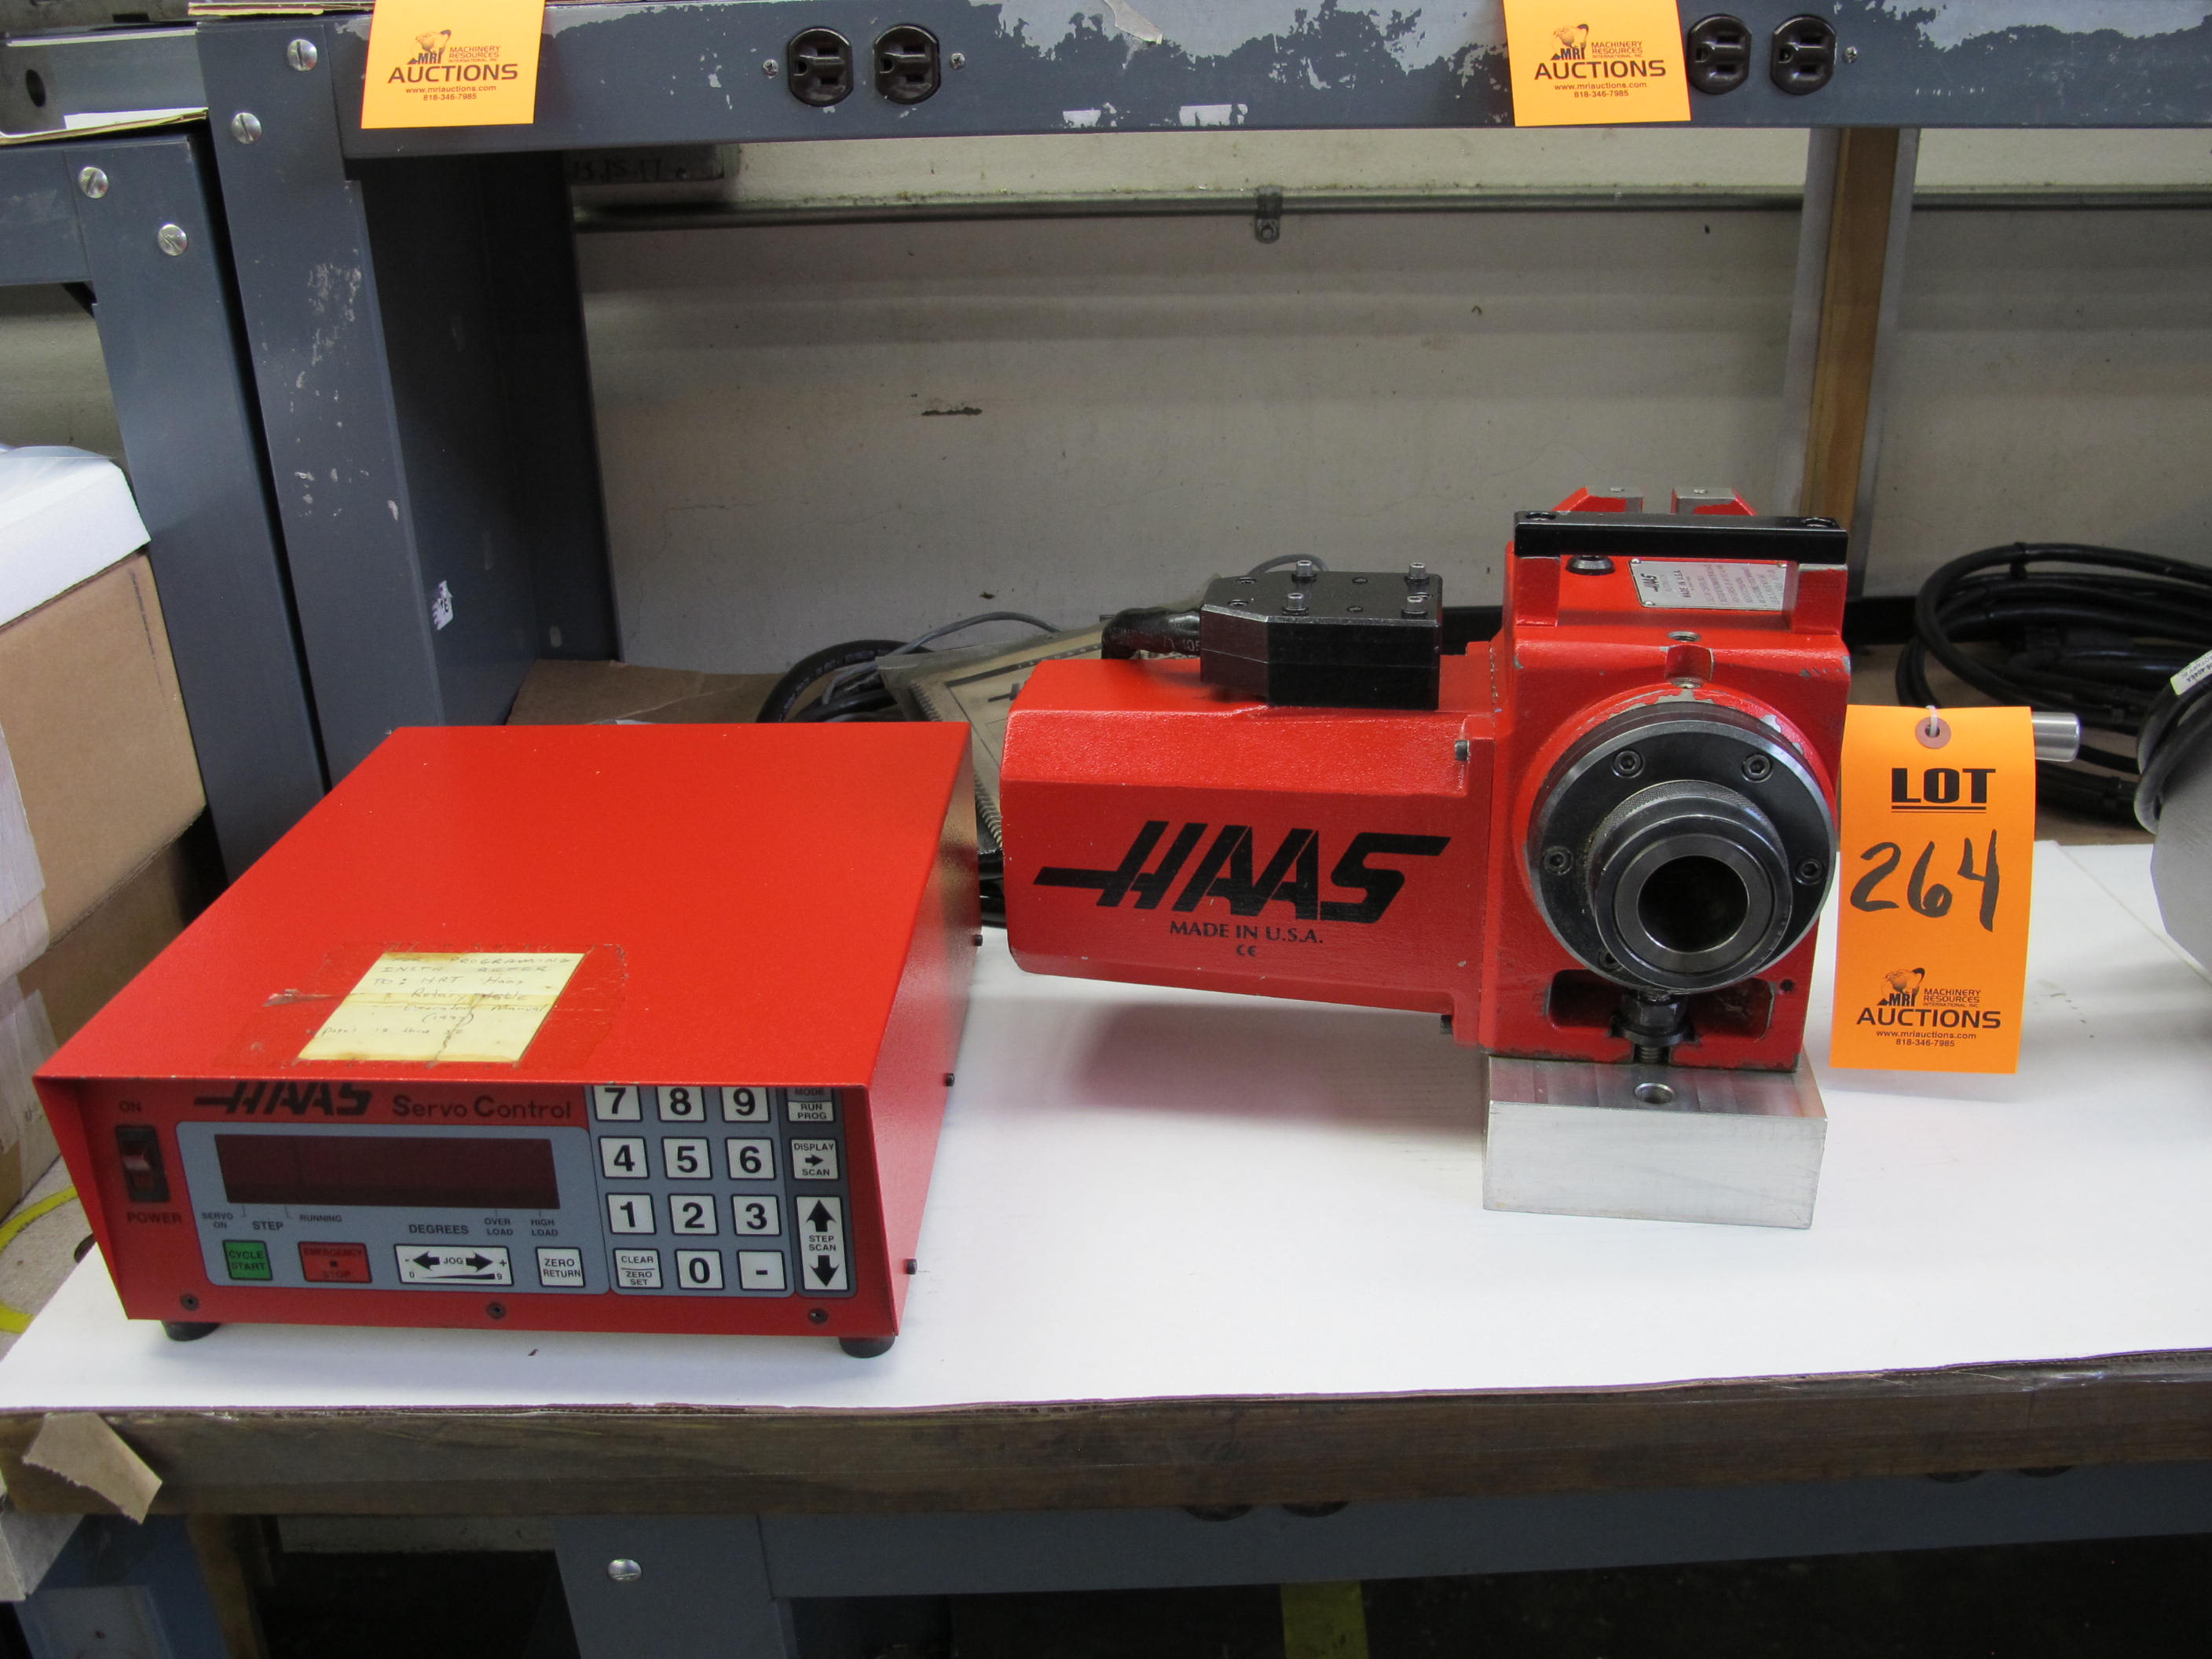 HAAS MODEL HA5CP1 INDEXER, S/N 505715 - HAAS SERVO CONTROL